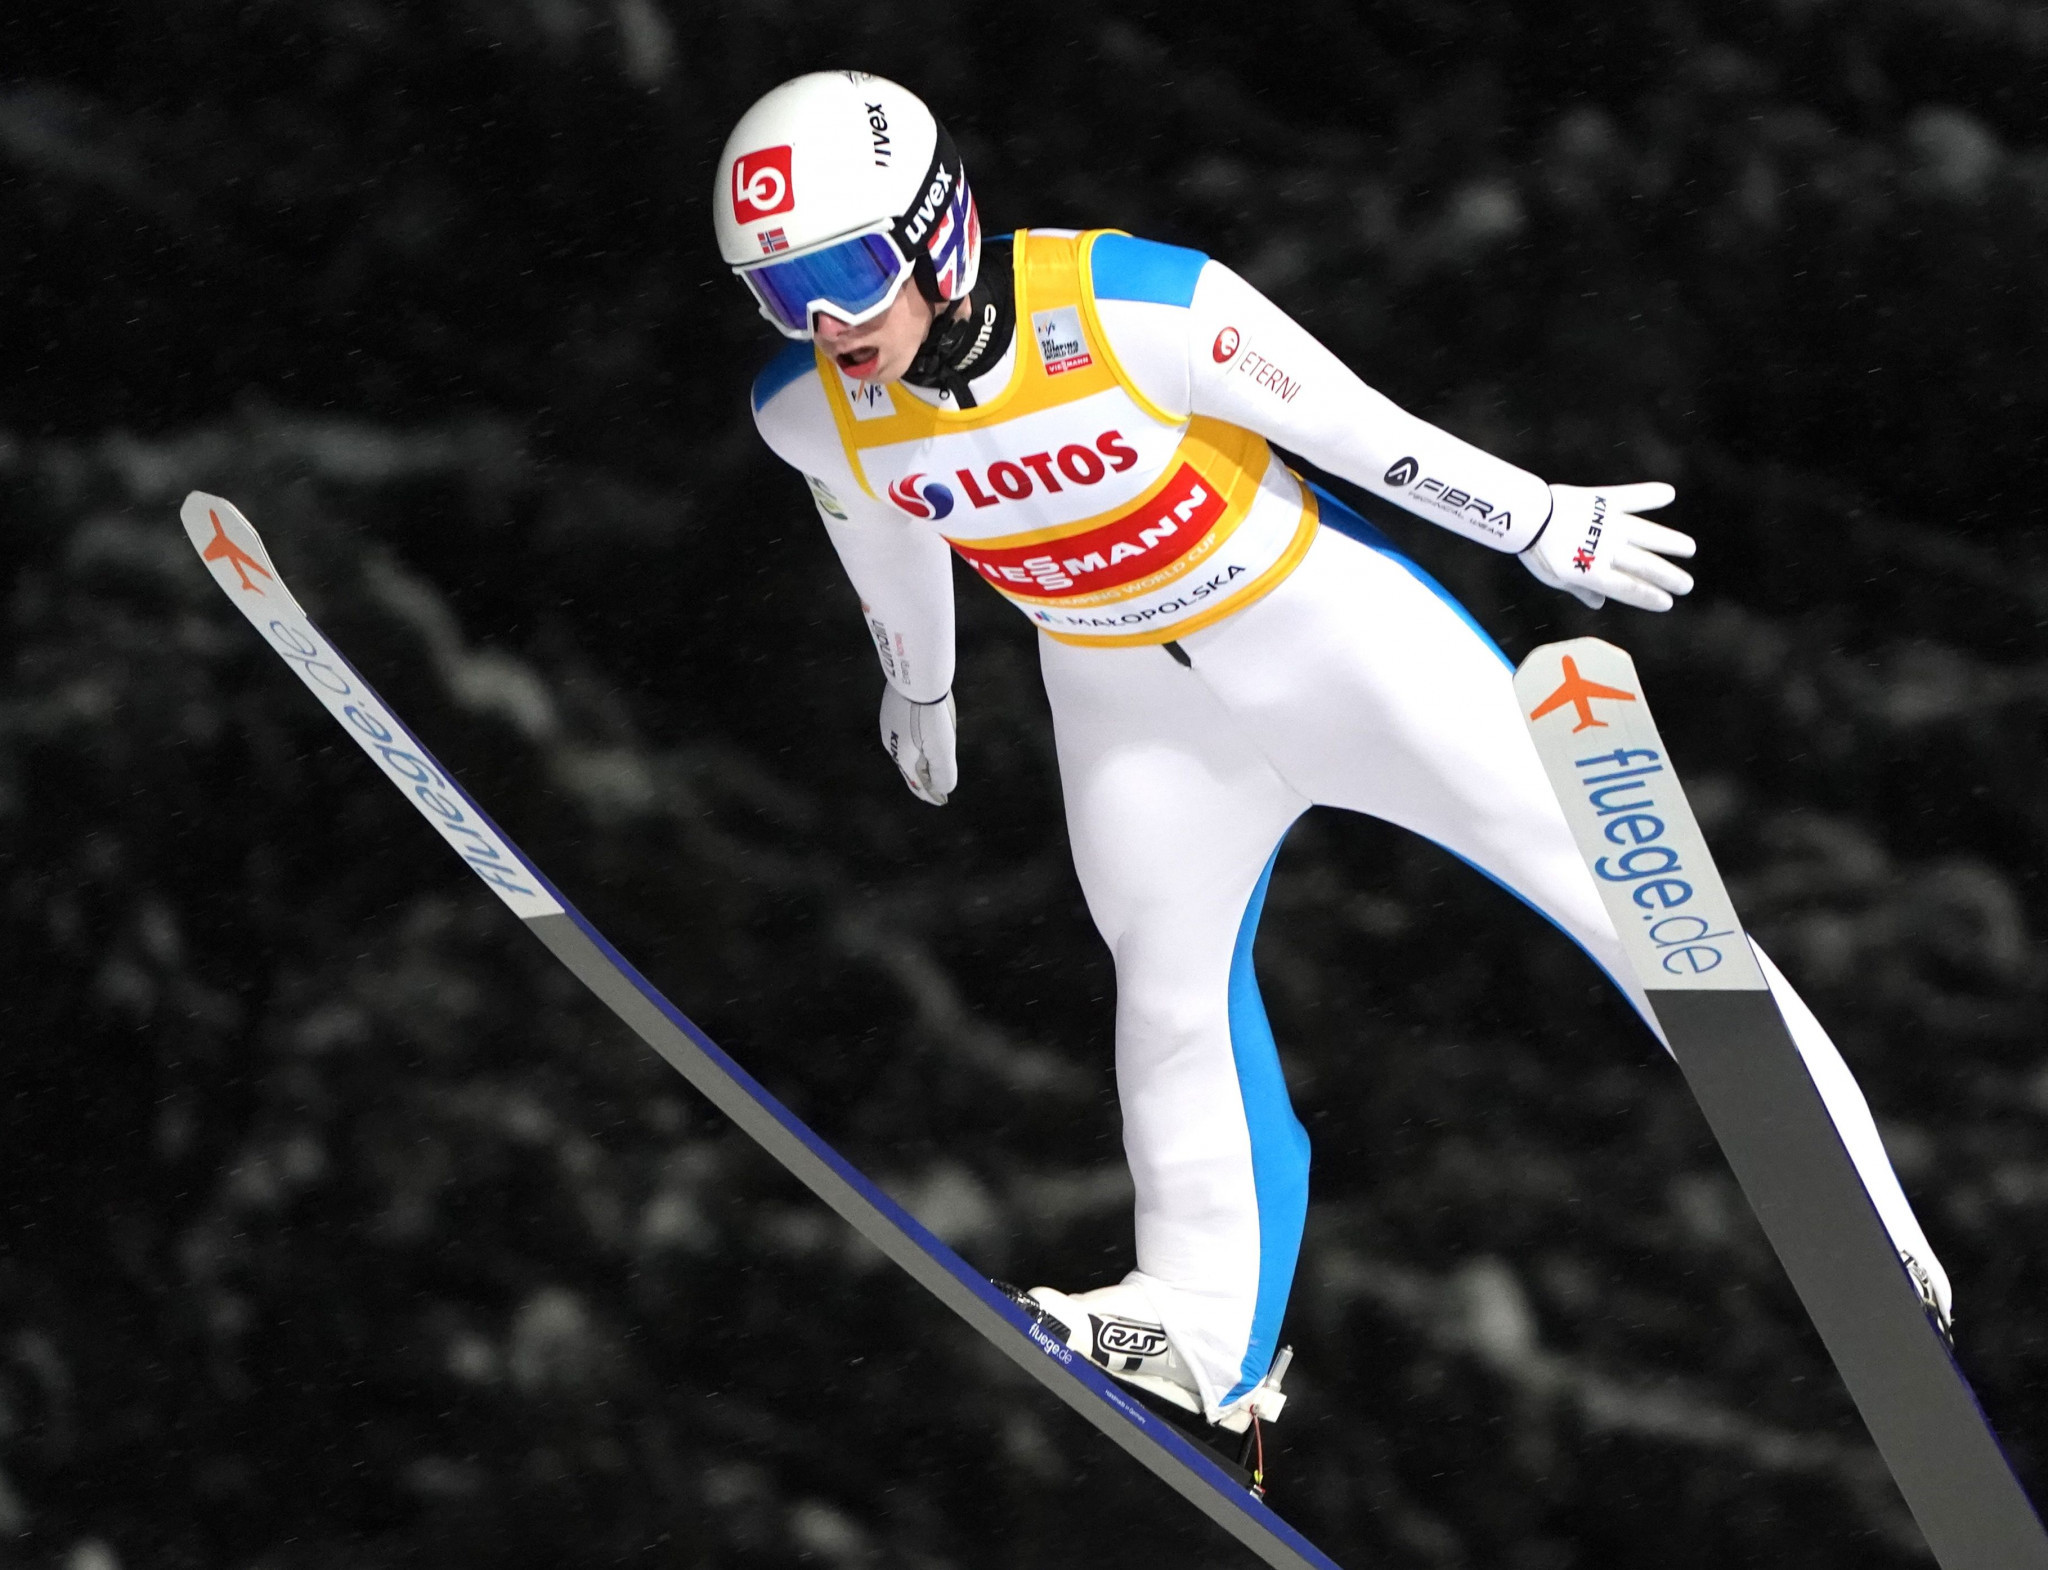 Granerud looks to extend Ski Jumping World Cup lead in Lahti